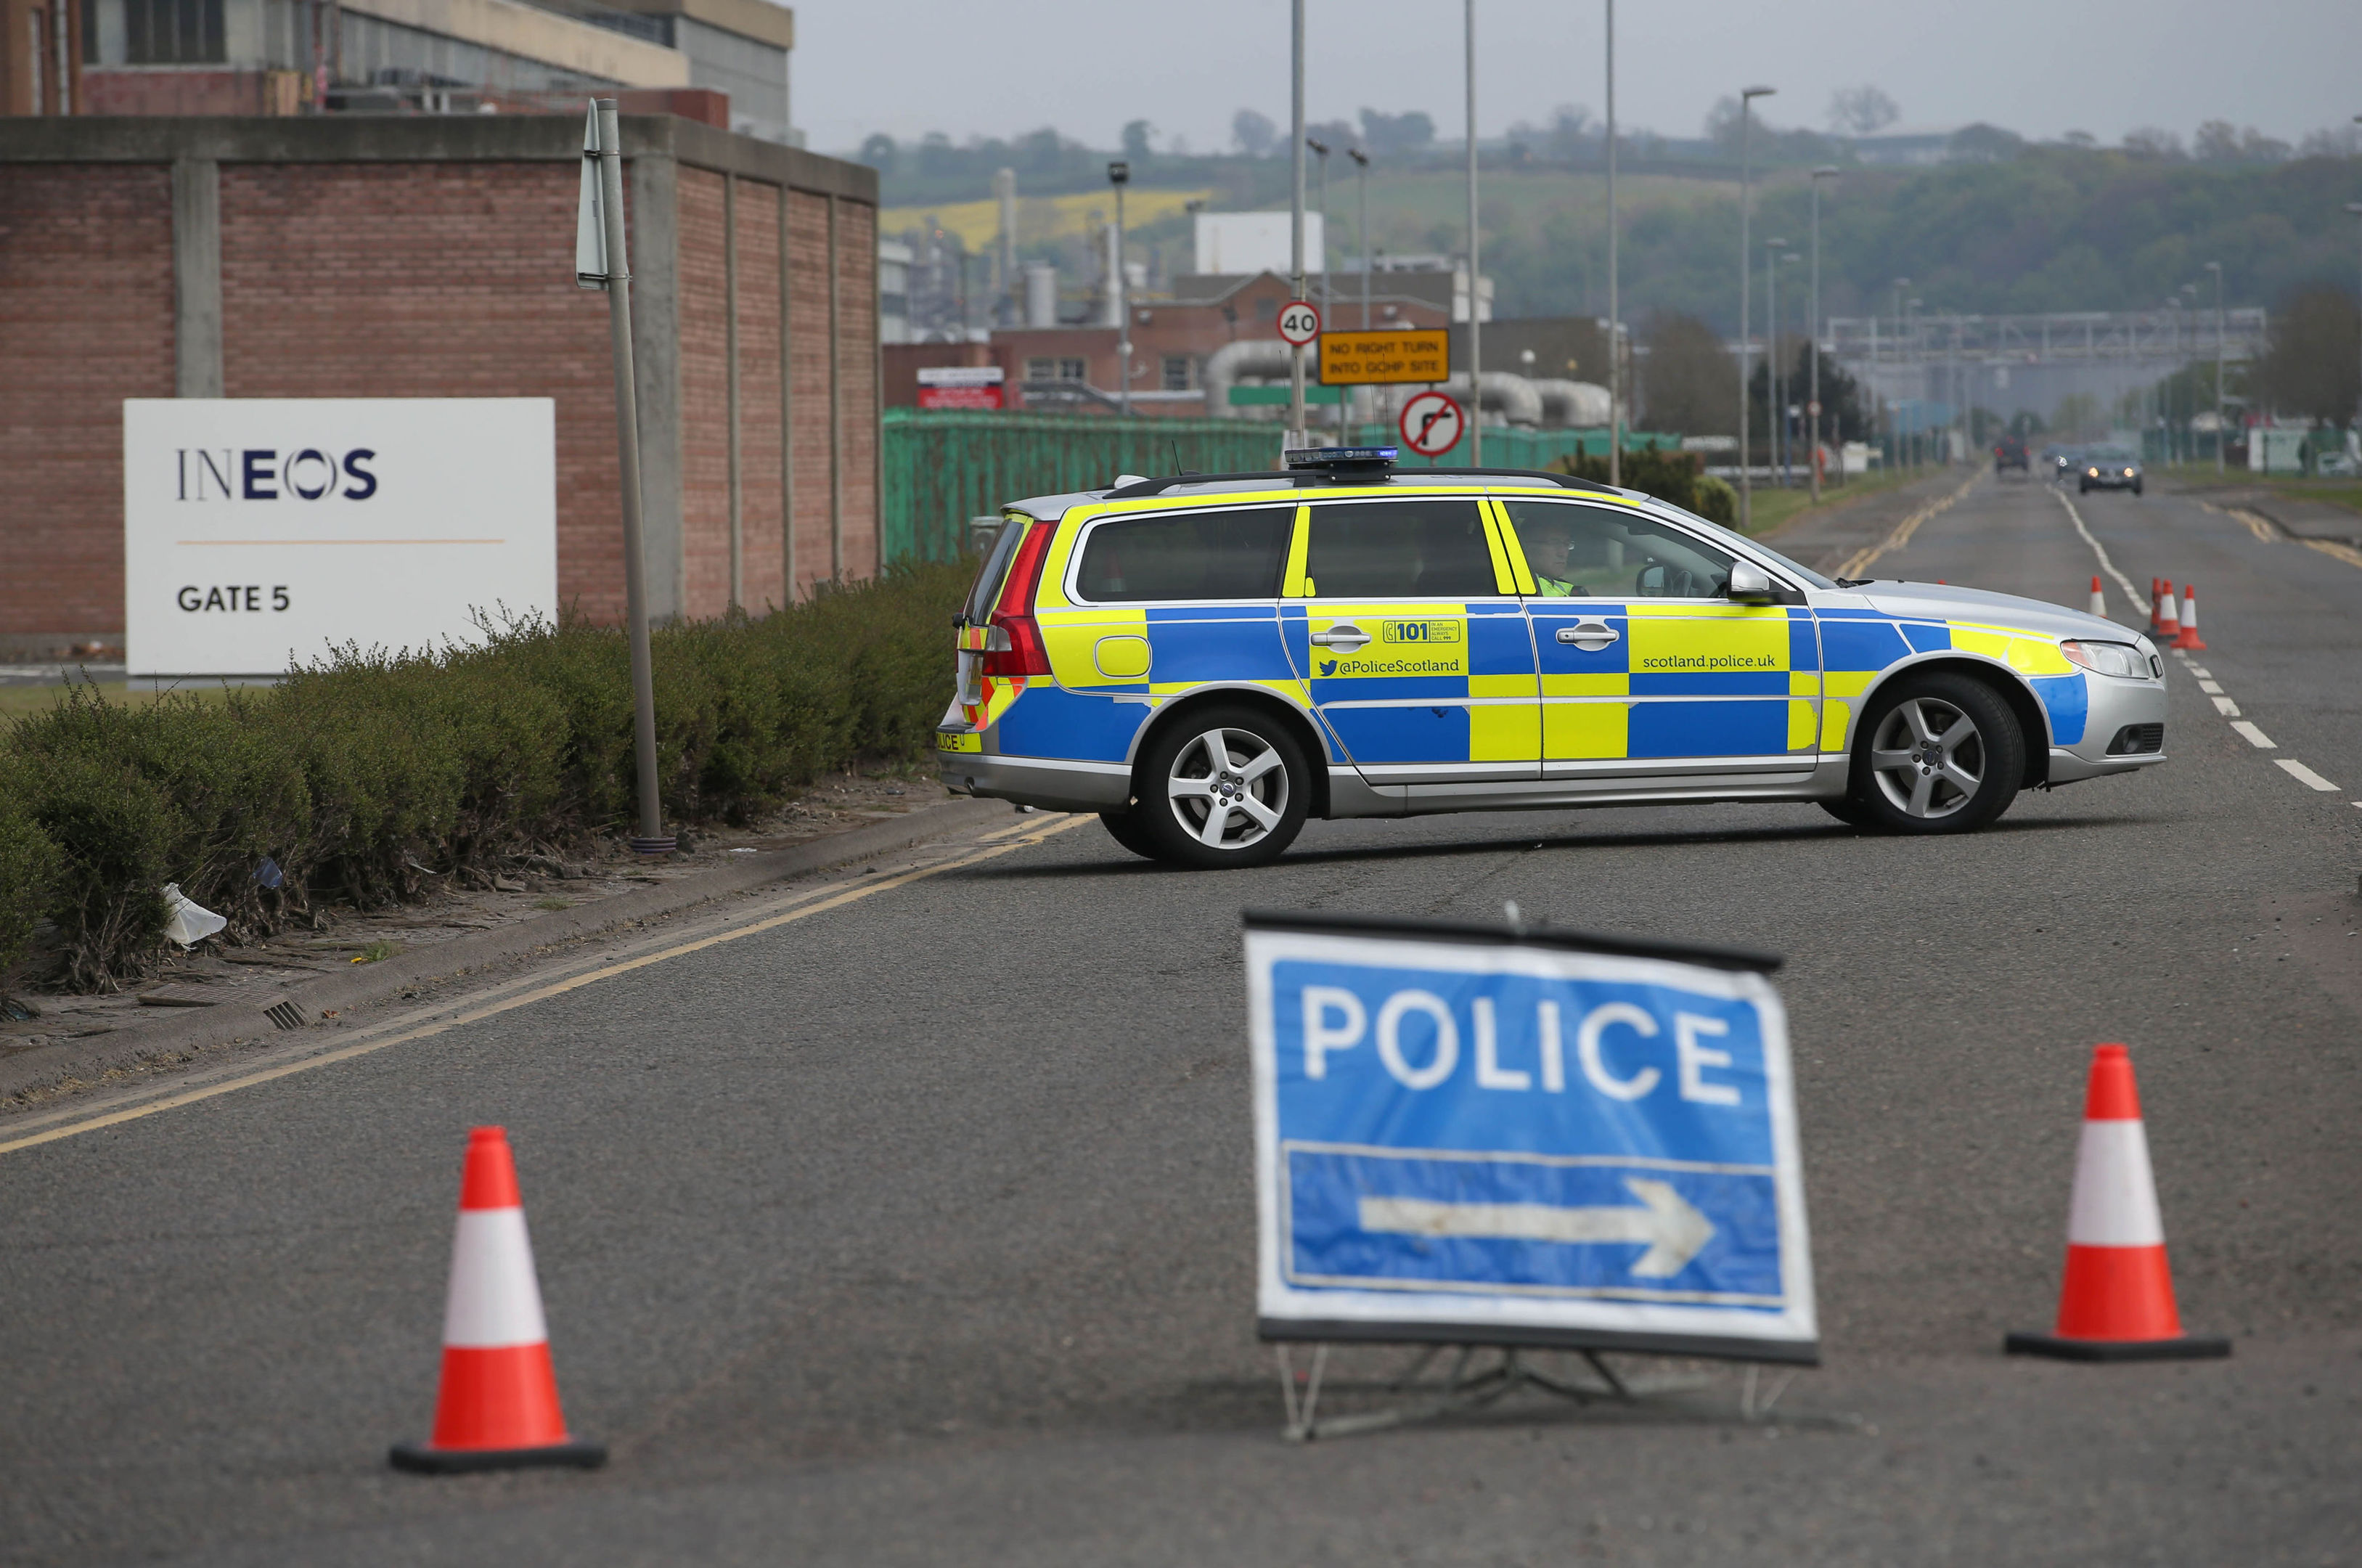 A police car blocks the entrance to the petrochemical plant in Grangemouth.